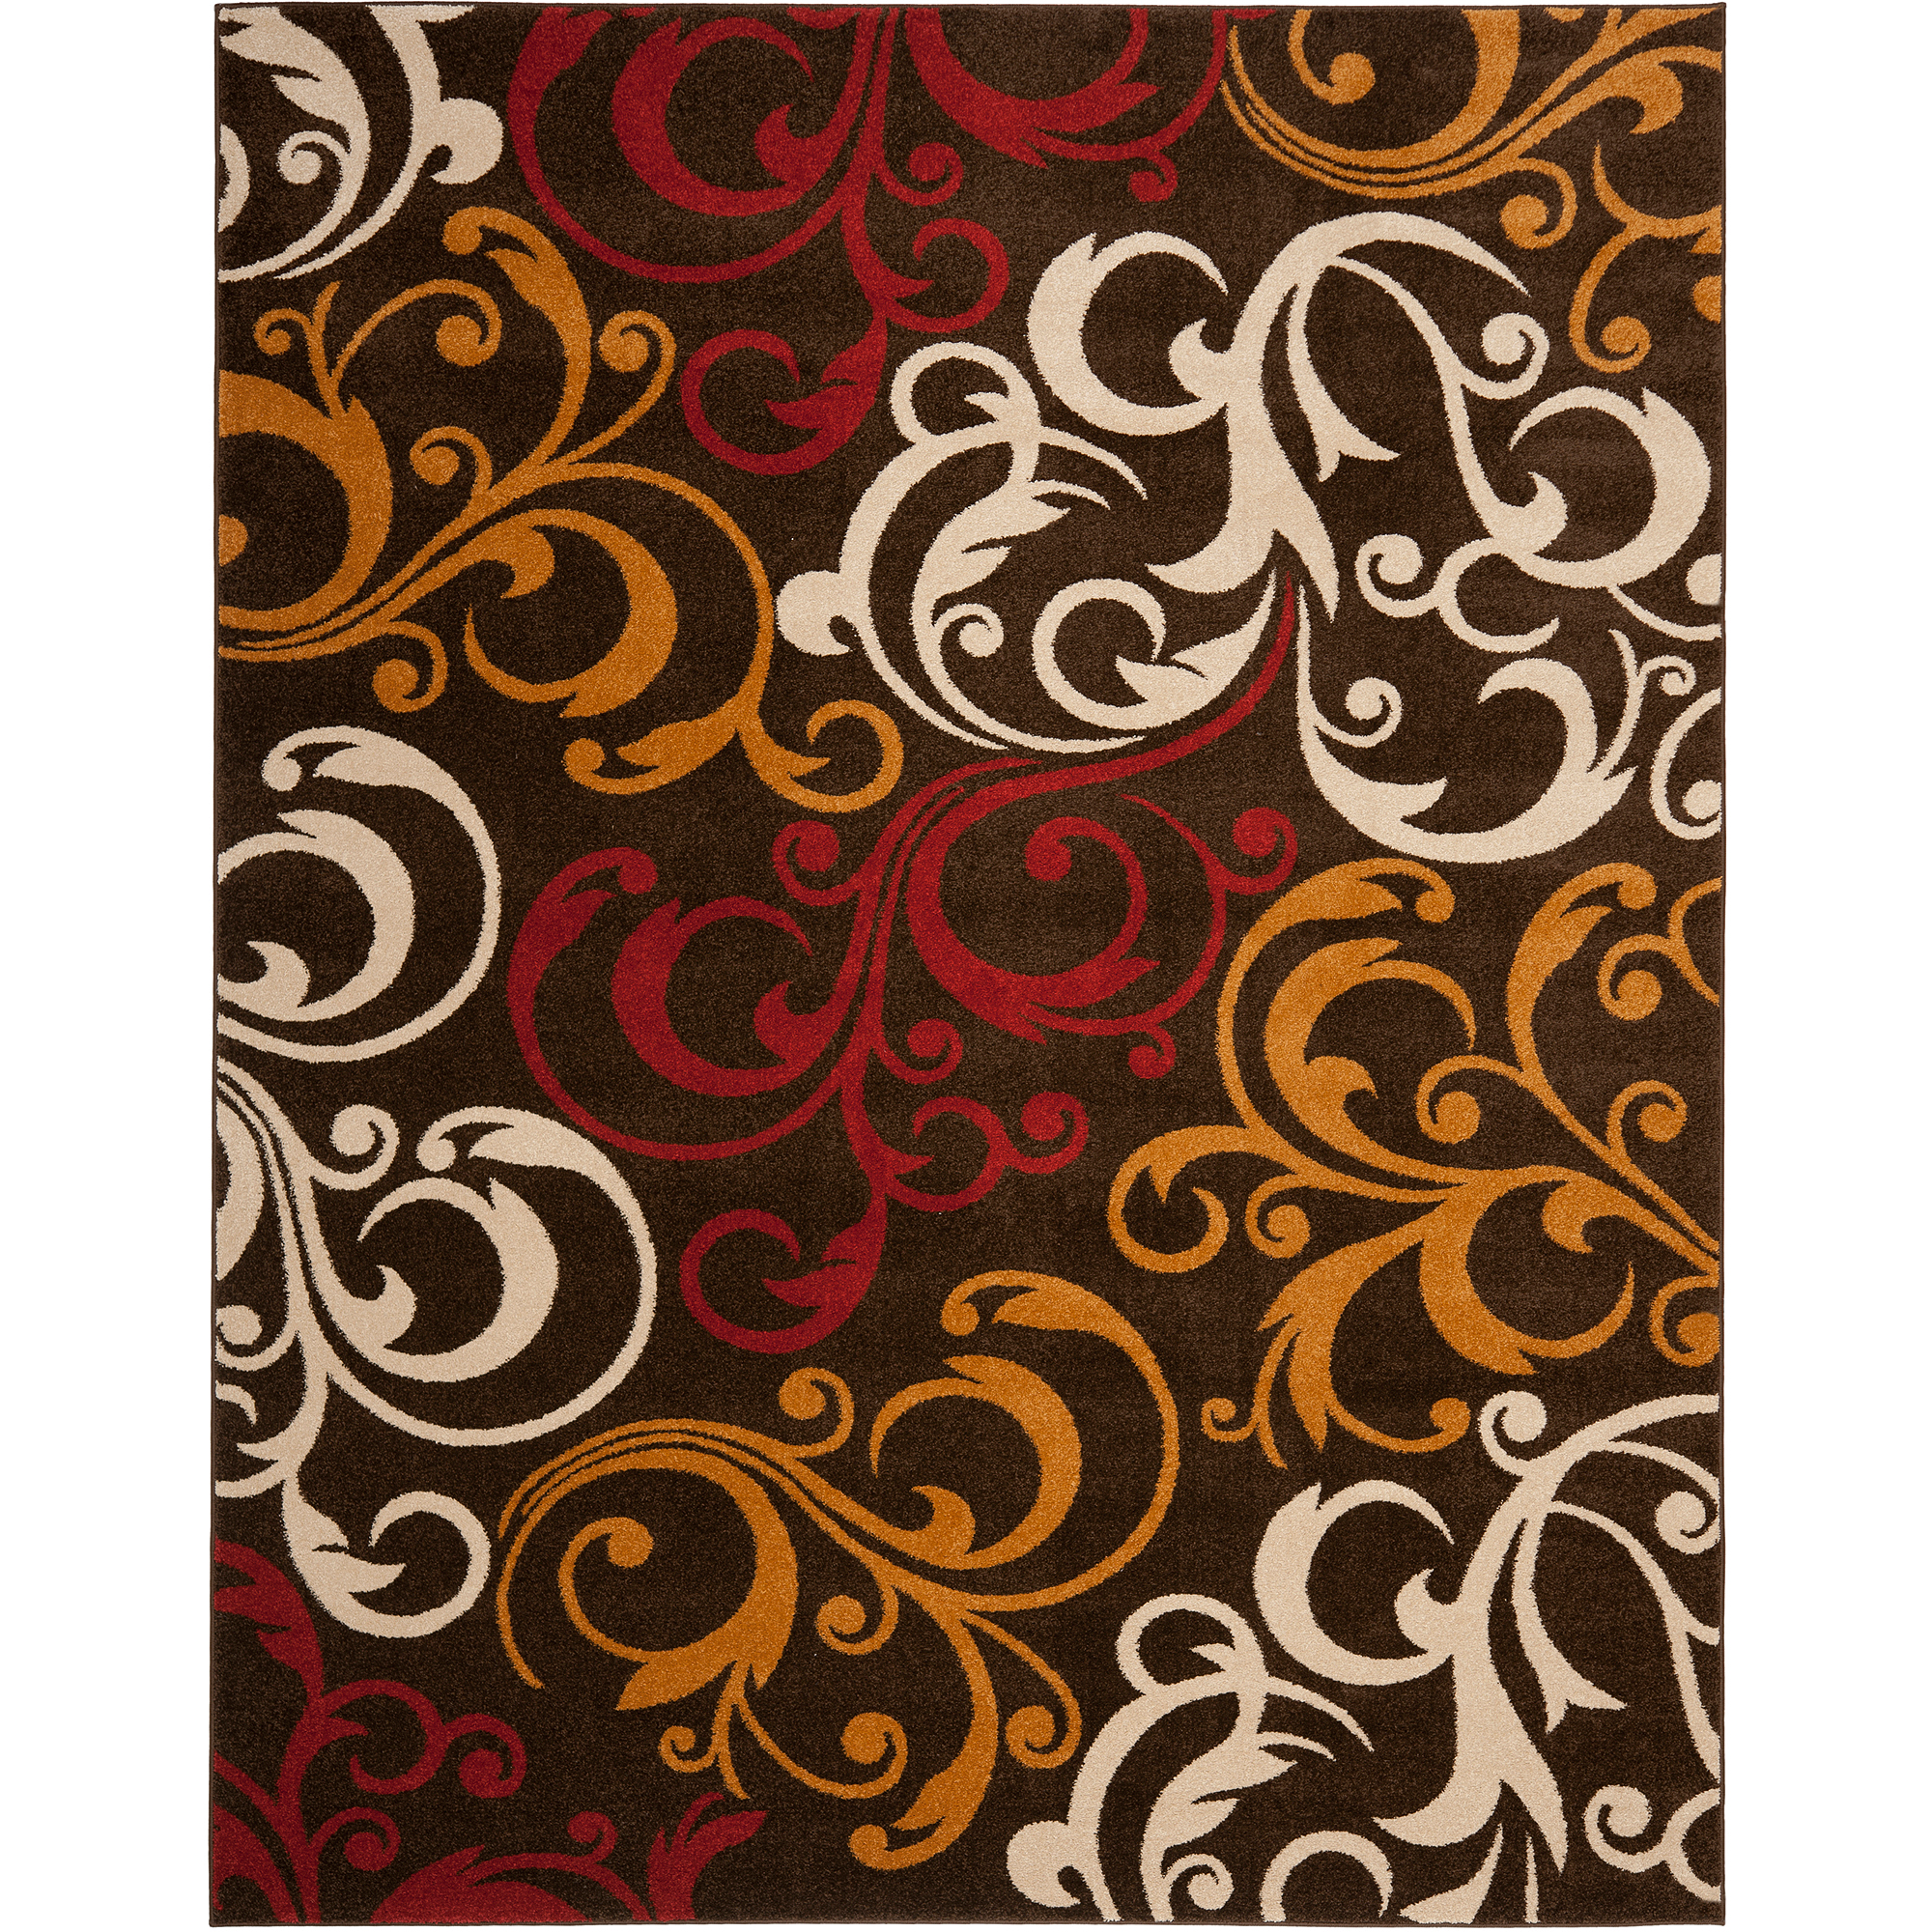 Safavieh Newbury Amala Power Loomed Area Rug, Brown and Gold